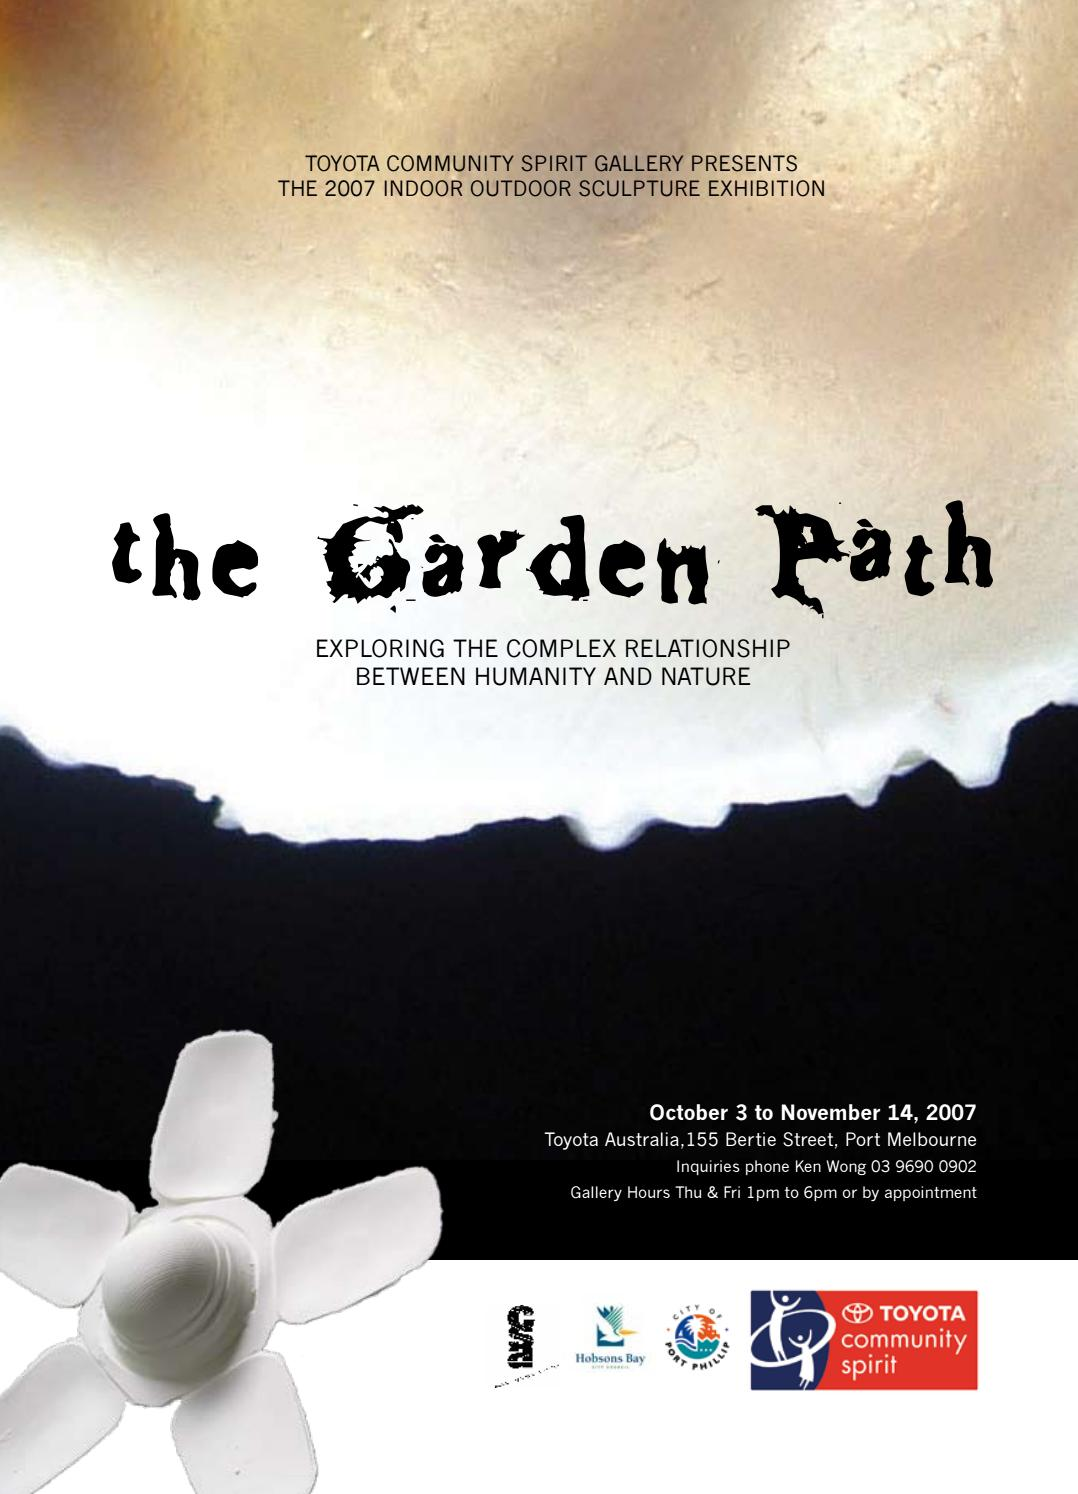 the Garden Path - exploring the complex relationship between humanity &  nature